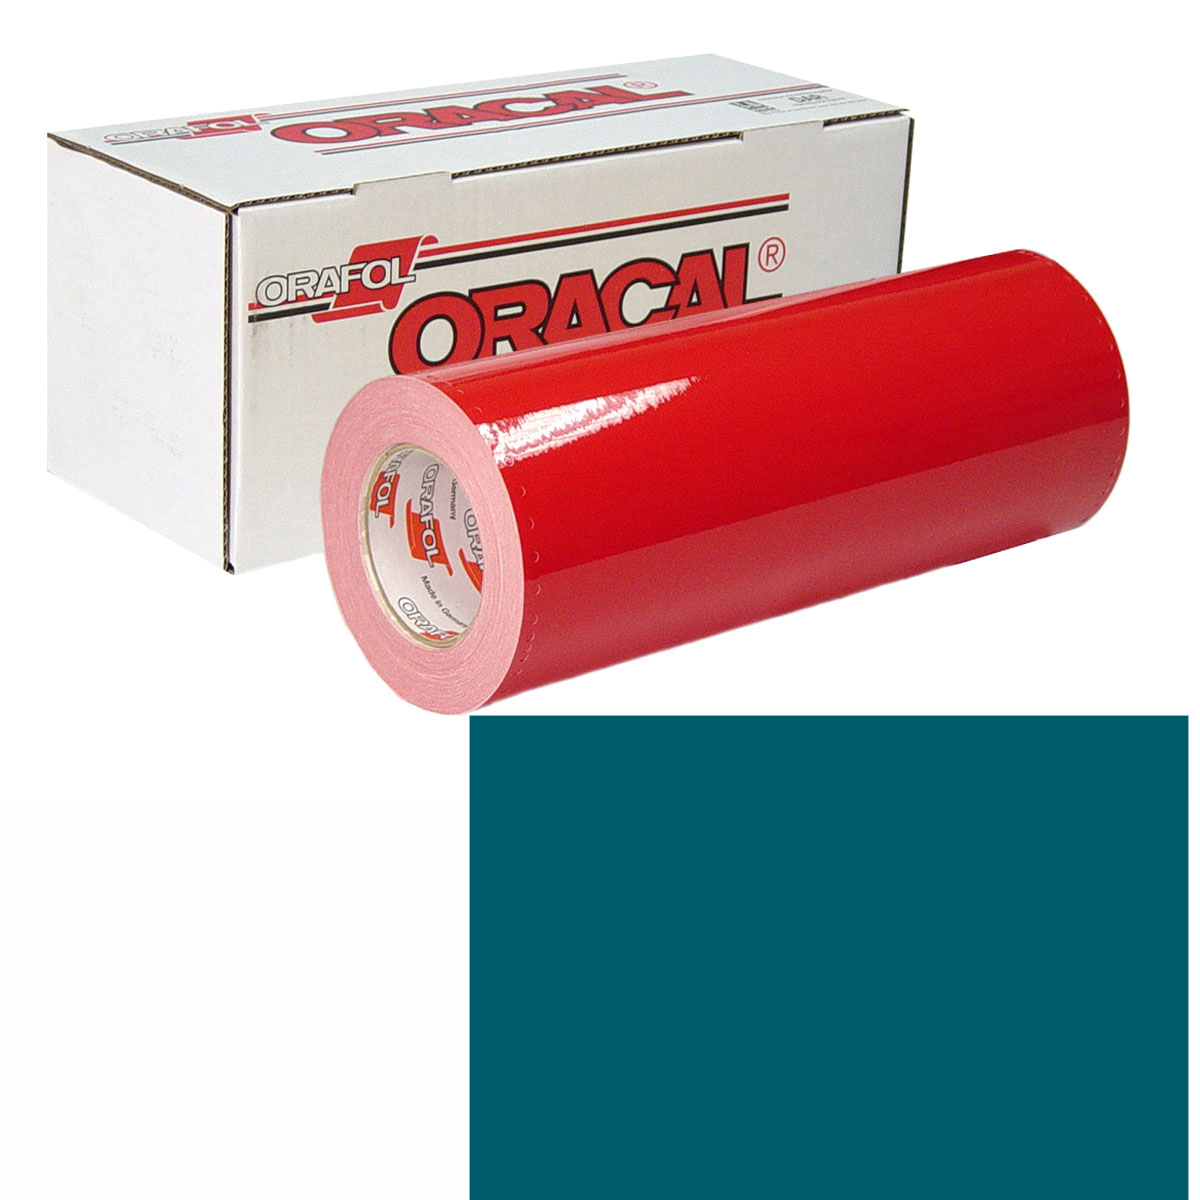 ORACAL 951M Unp 24in X 10yd 199 Turquoise Met